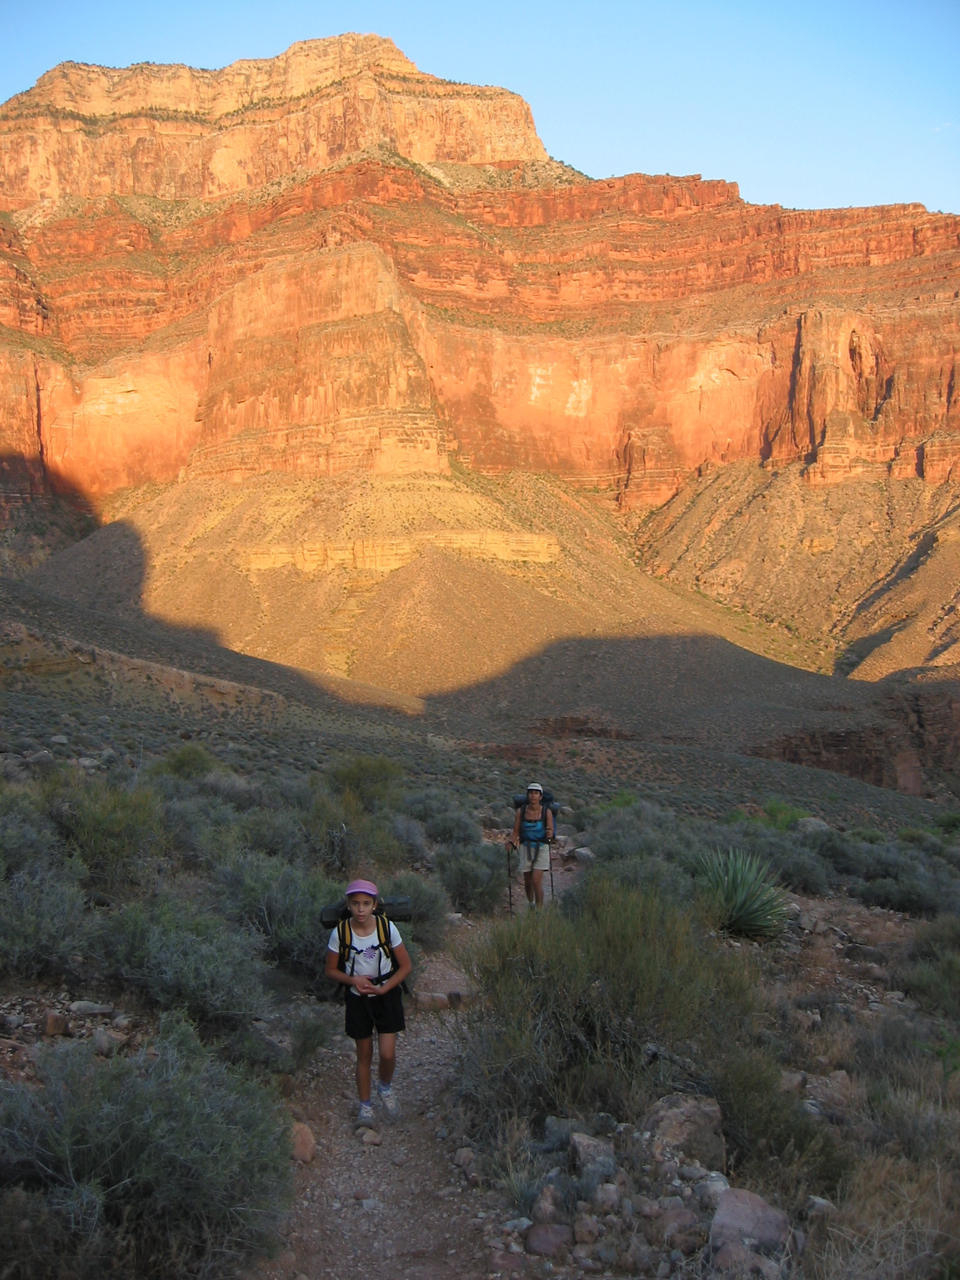 We rose in the dark and left Hermit Creek very early, about 430 am. Here Amy and Karen hike along the trail toward Monument Creek.